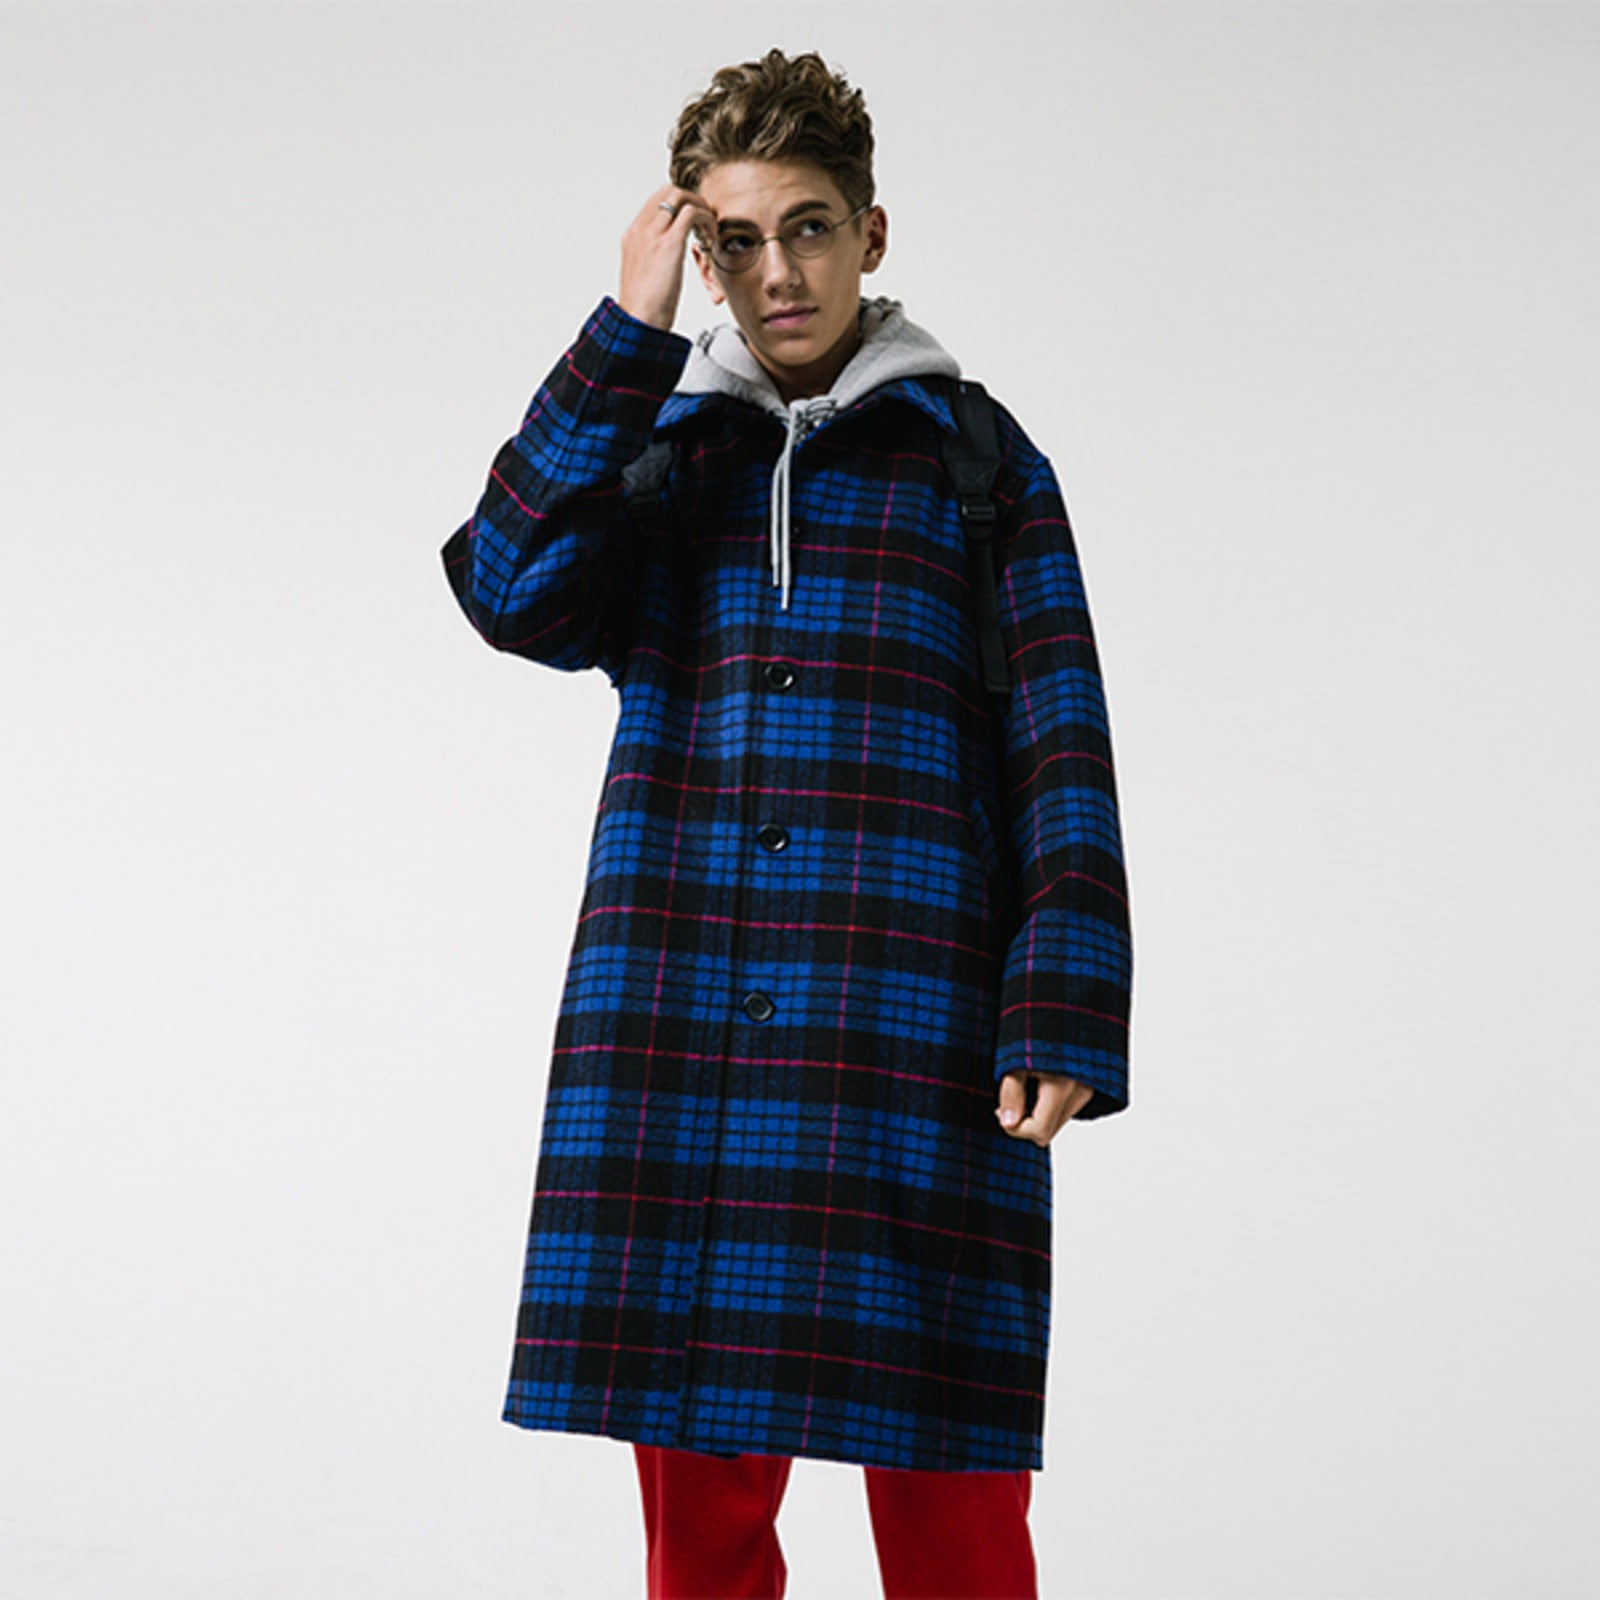 CITY WALKS COAT (BLUE)